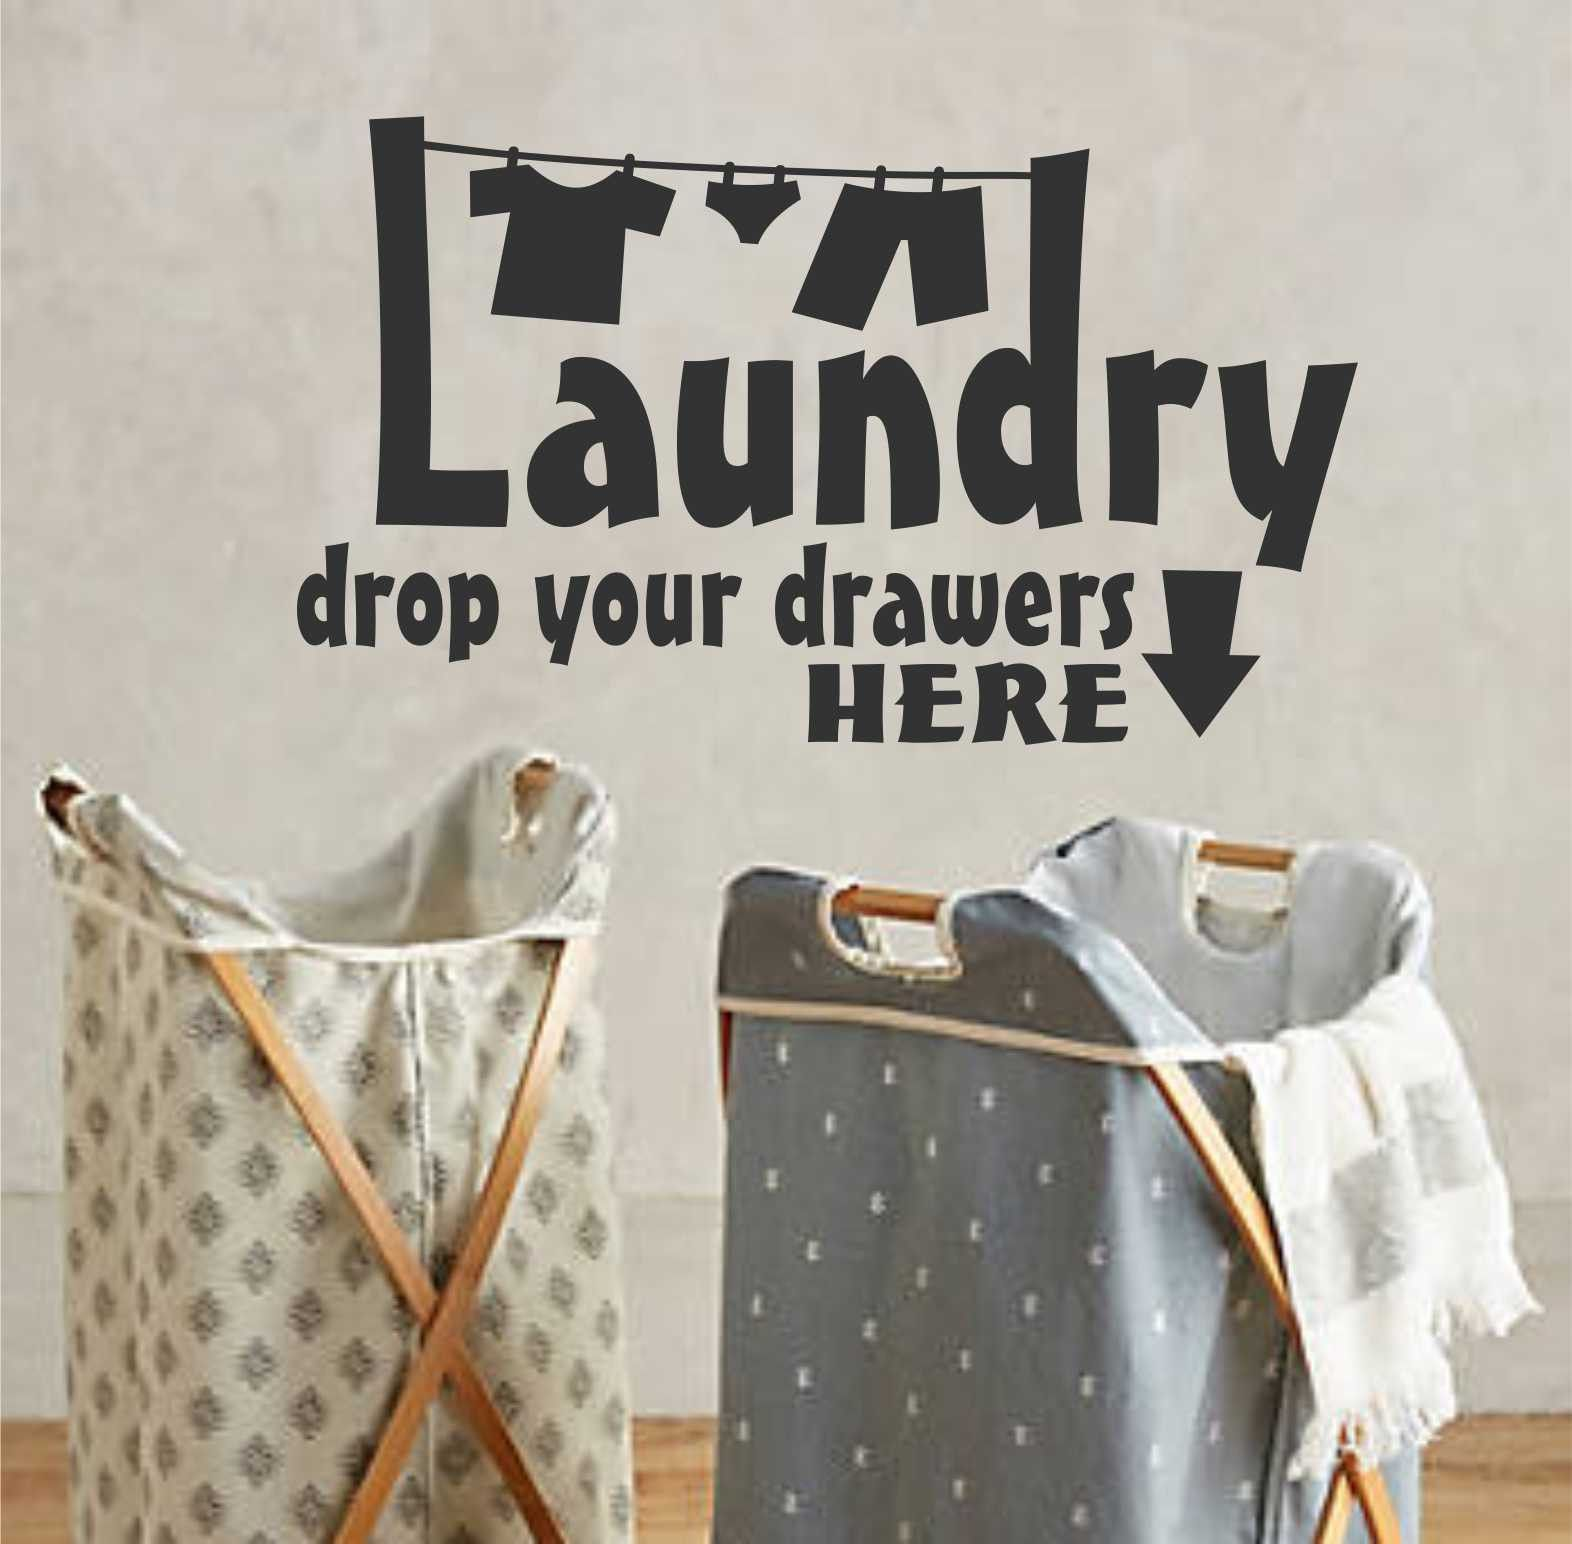 Laundry Room Quotes For Walls Awesome Laundry Drop Drawers  Clothesline Vinyl Decal  Lettering  Vinyl Decorating Design